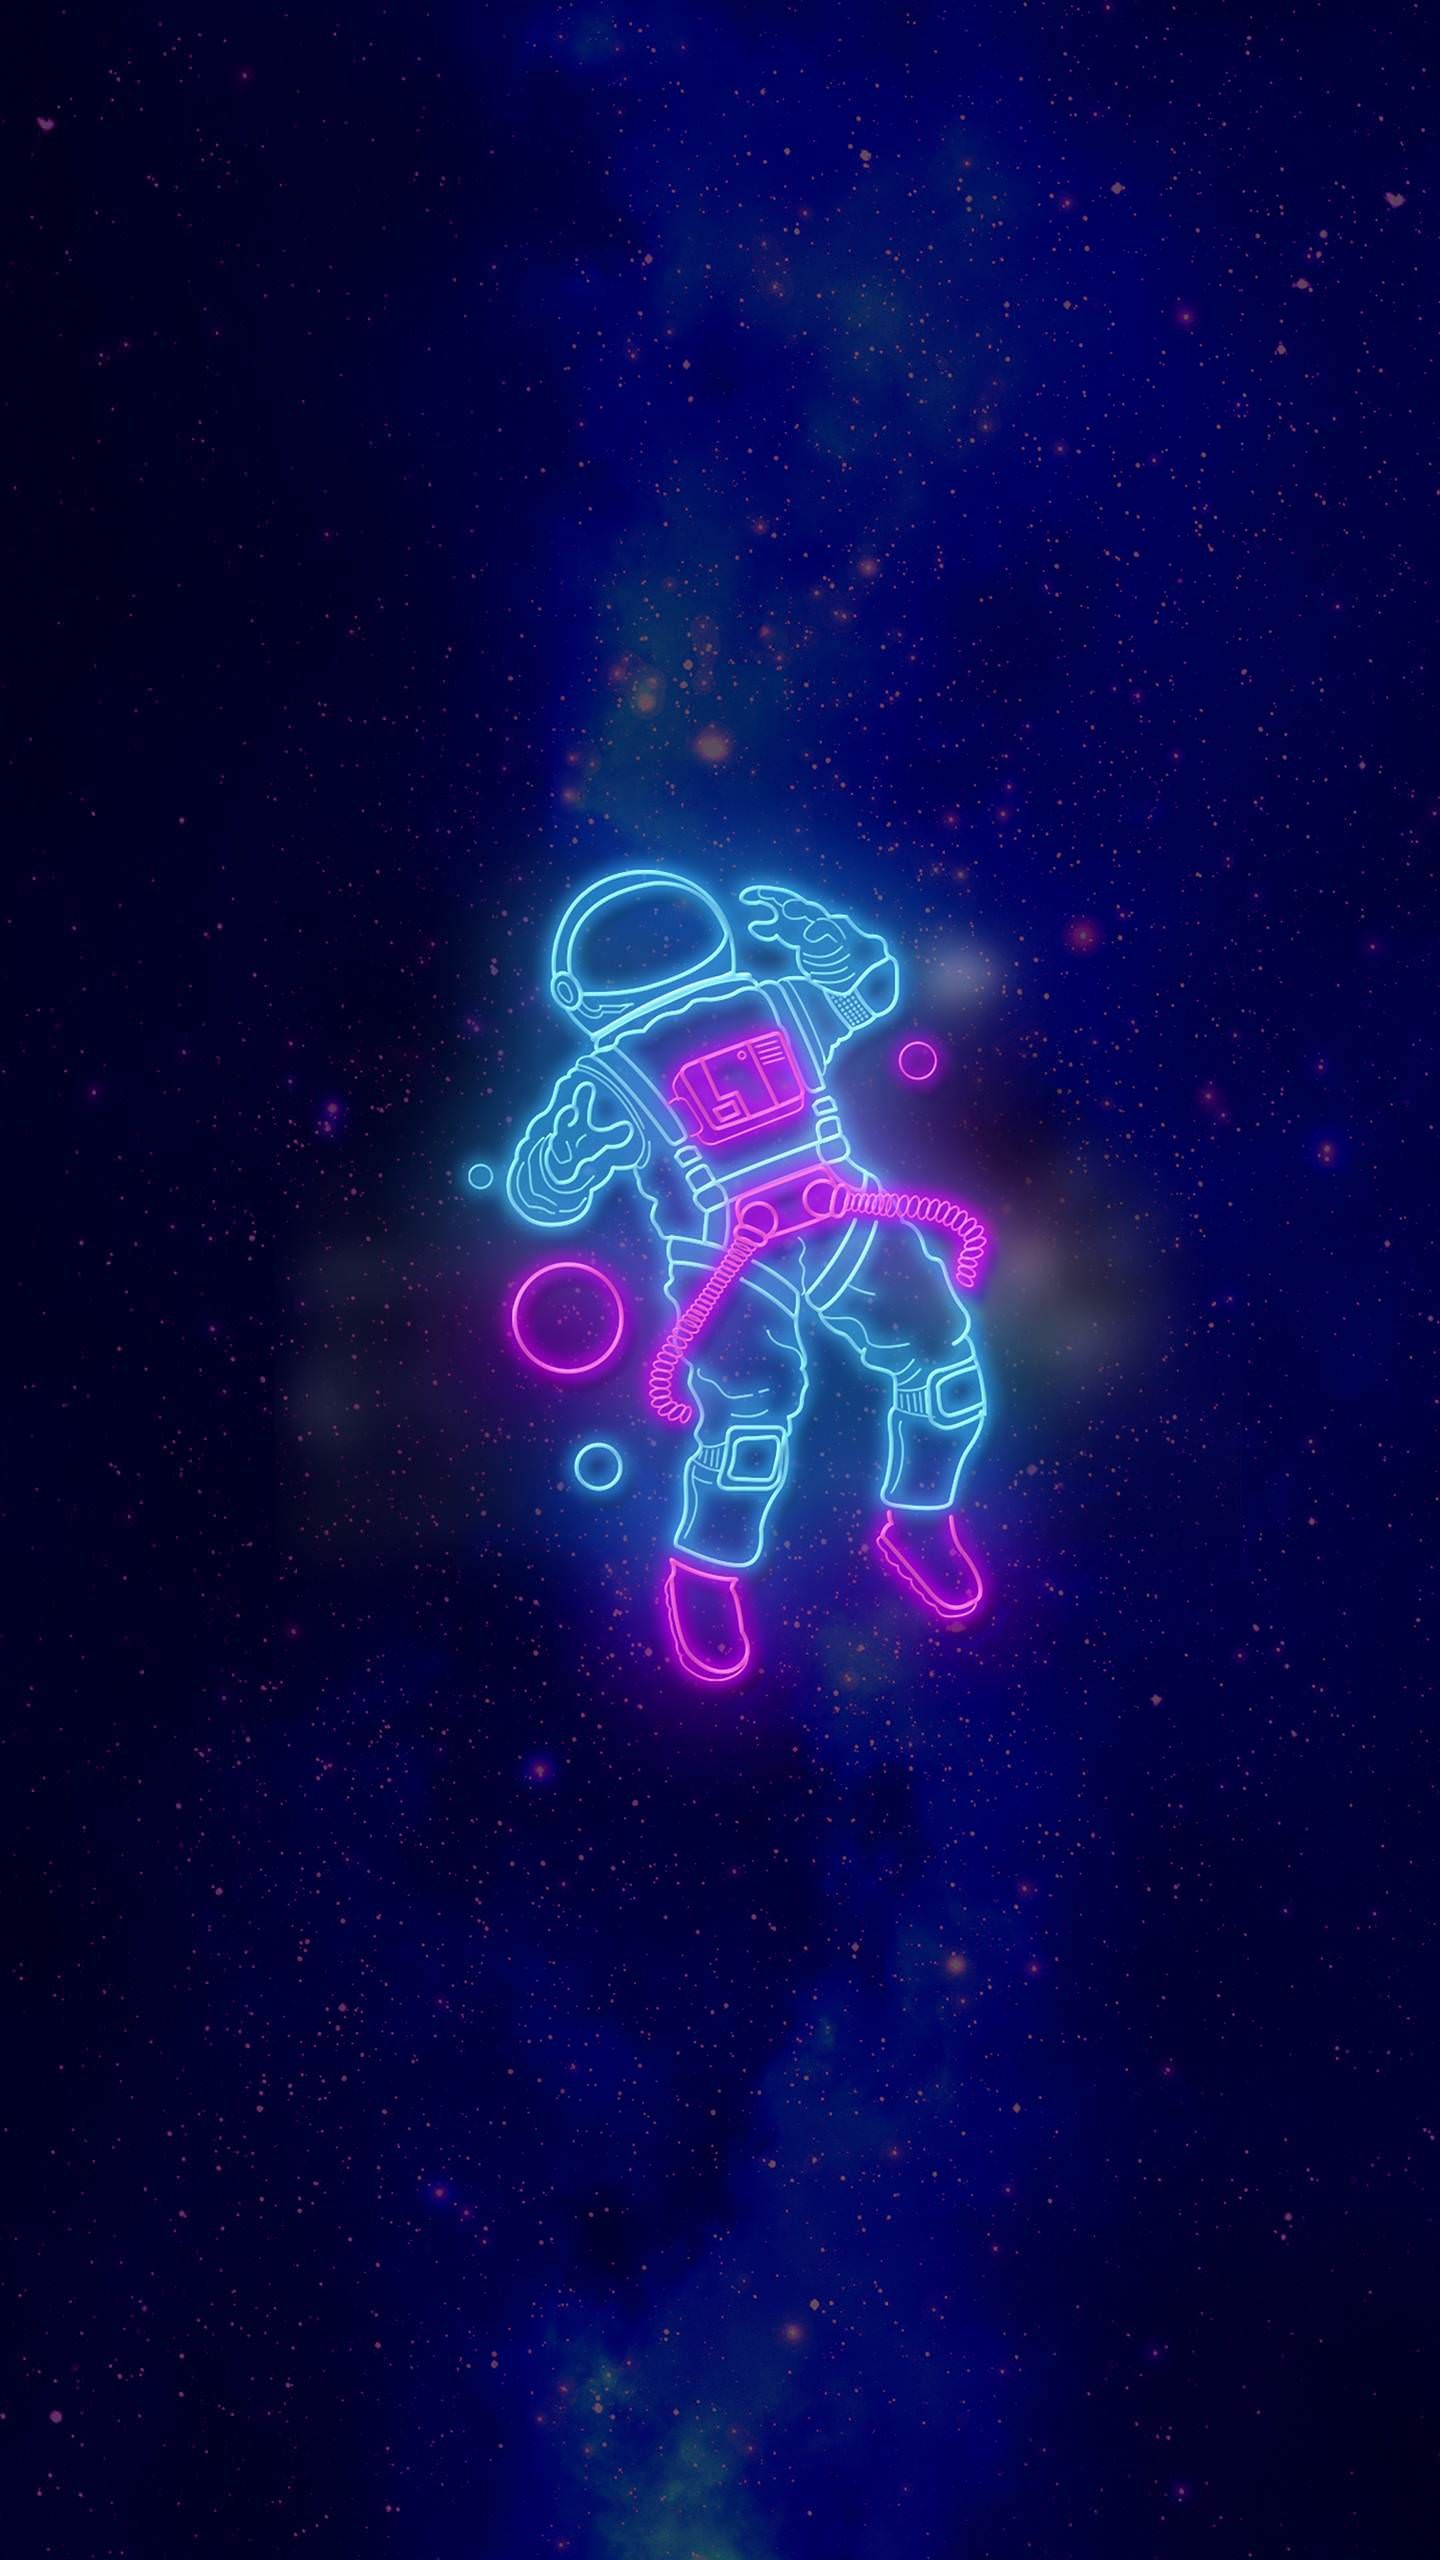 Neon Astronaut Wallpaper iphone neon Astronaut wallpaper